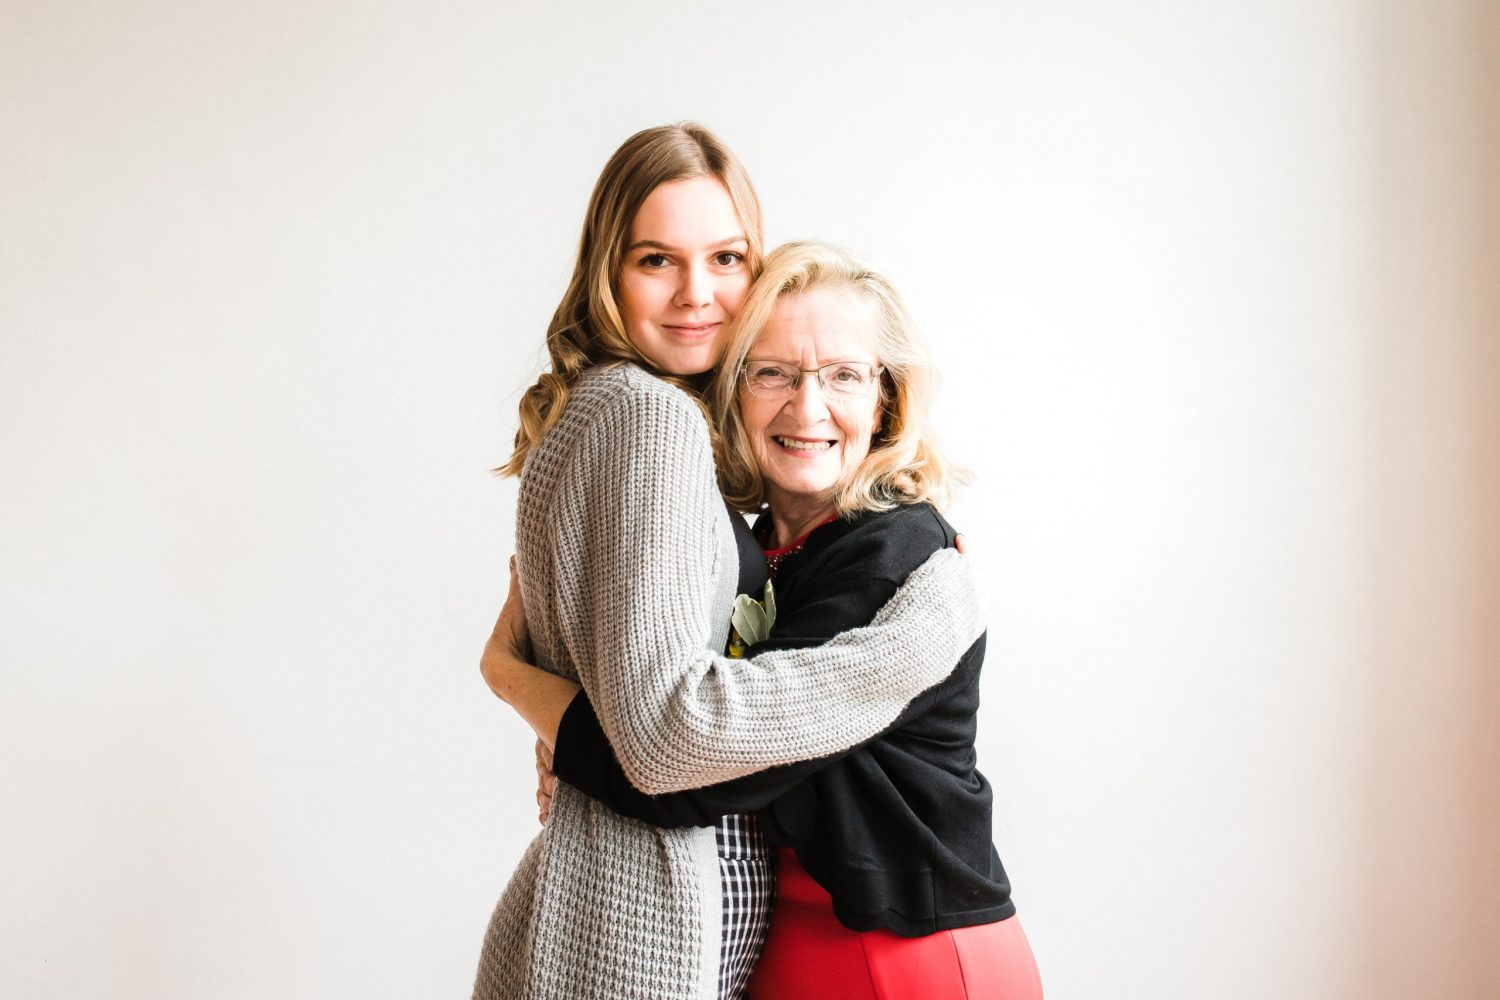 grandmother hugging granddaughter during lifestyle family photo session by ontario lifestyle photographer heather doughty photography at downtown peterborough studio